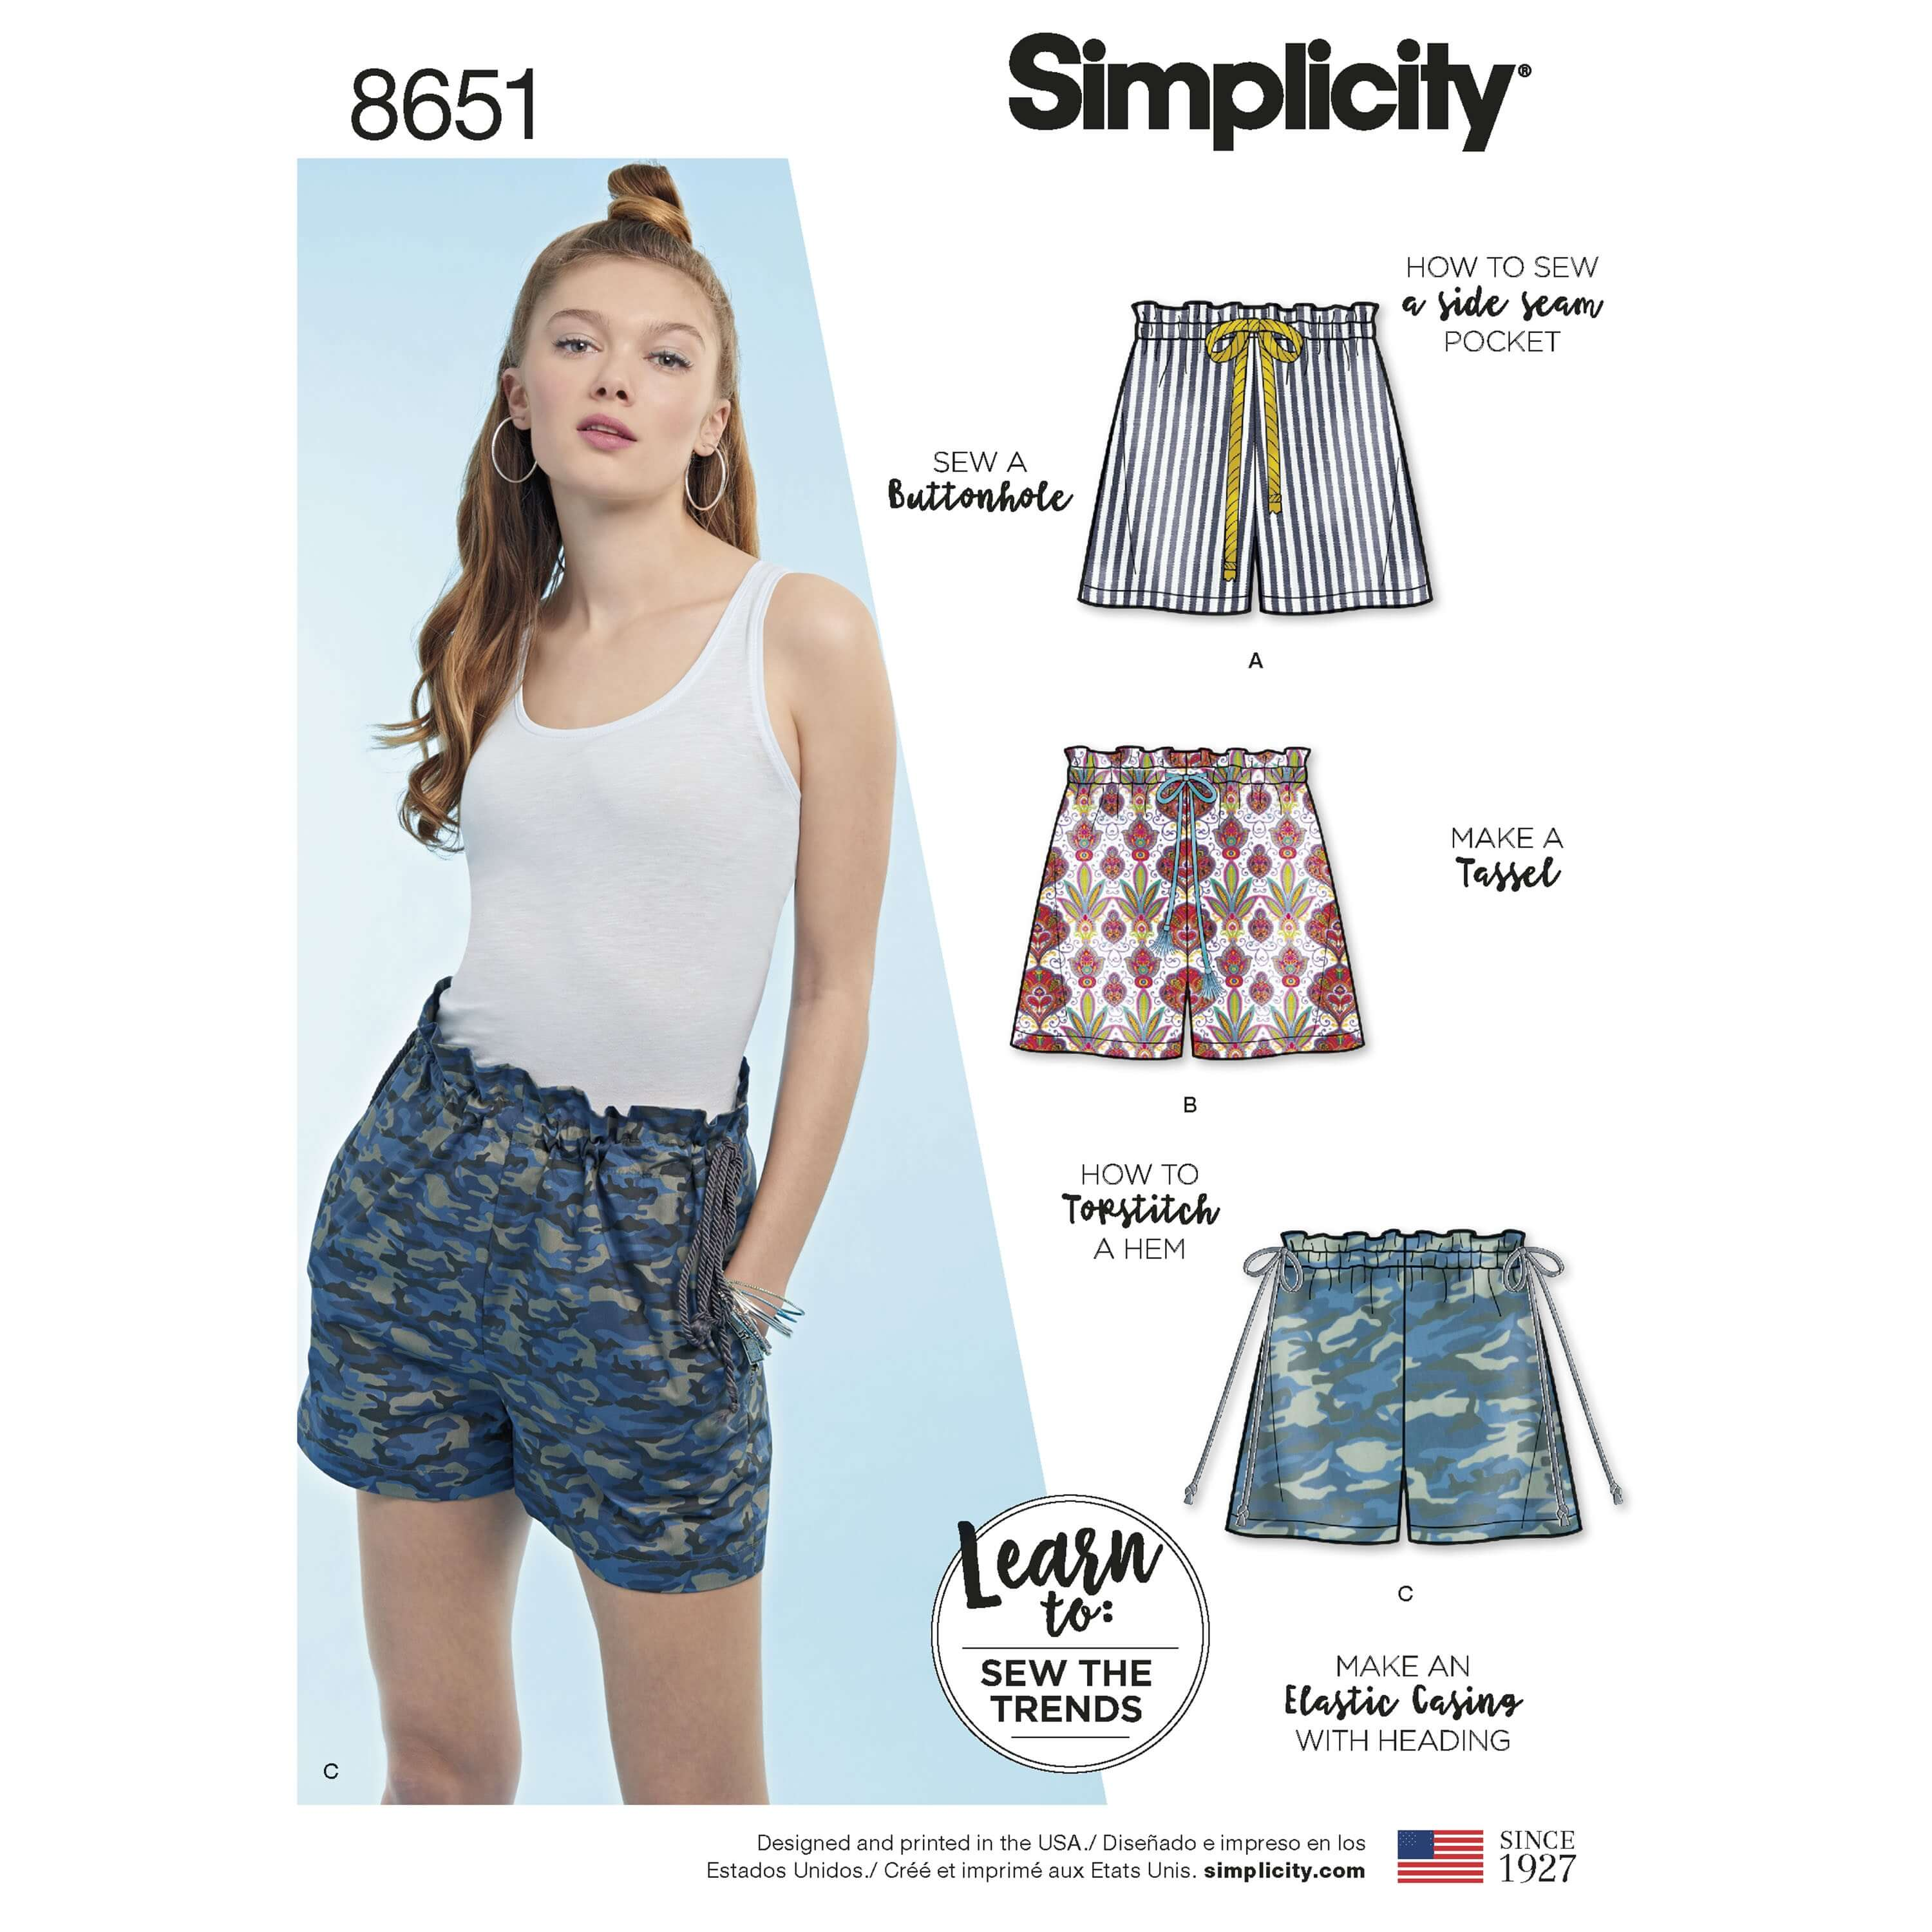 Simplicity Sewing Pattern 8651 Learn to Sew Pull on Shorts